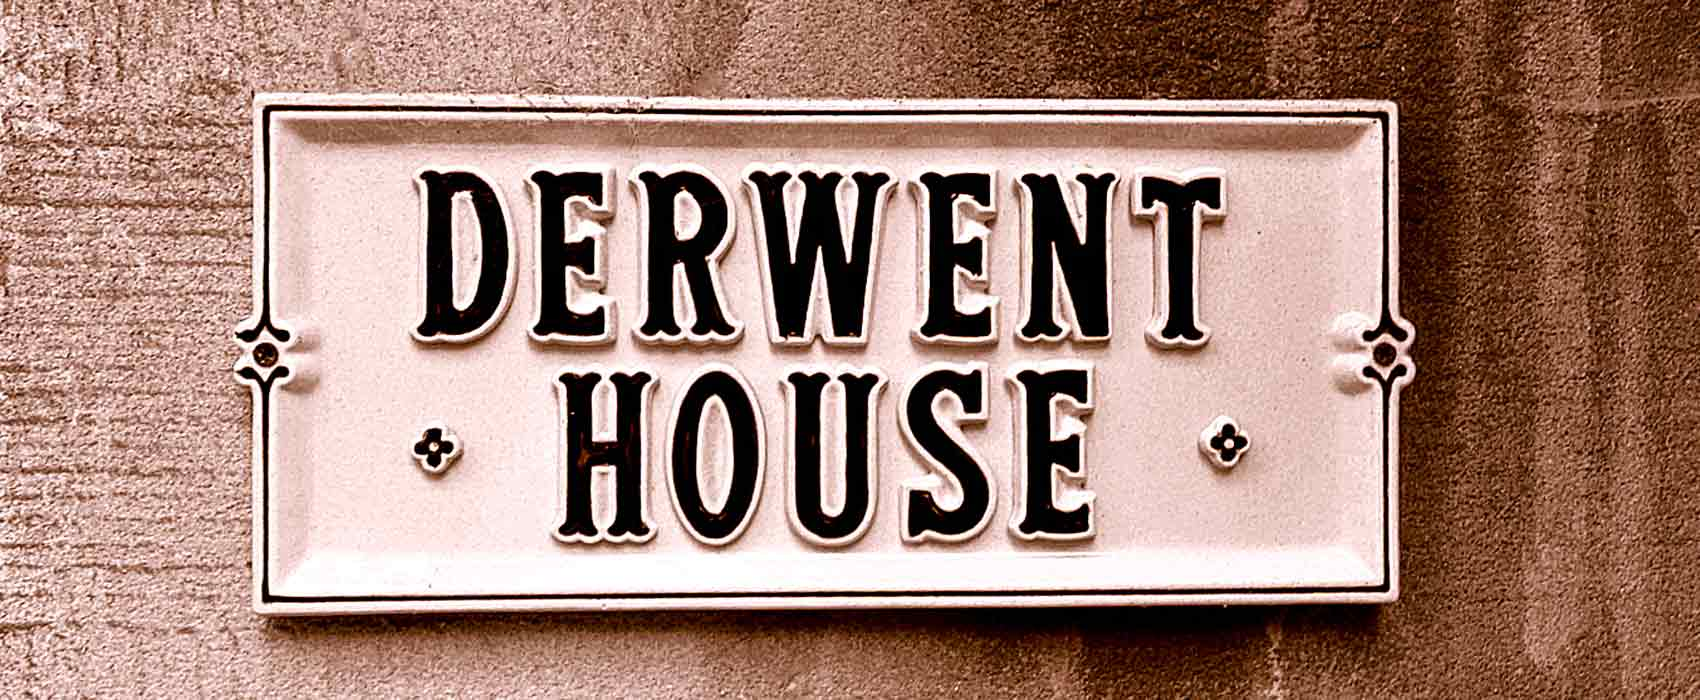 Derwent House sign